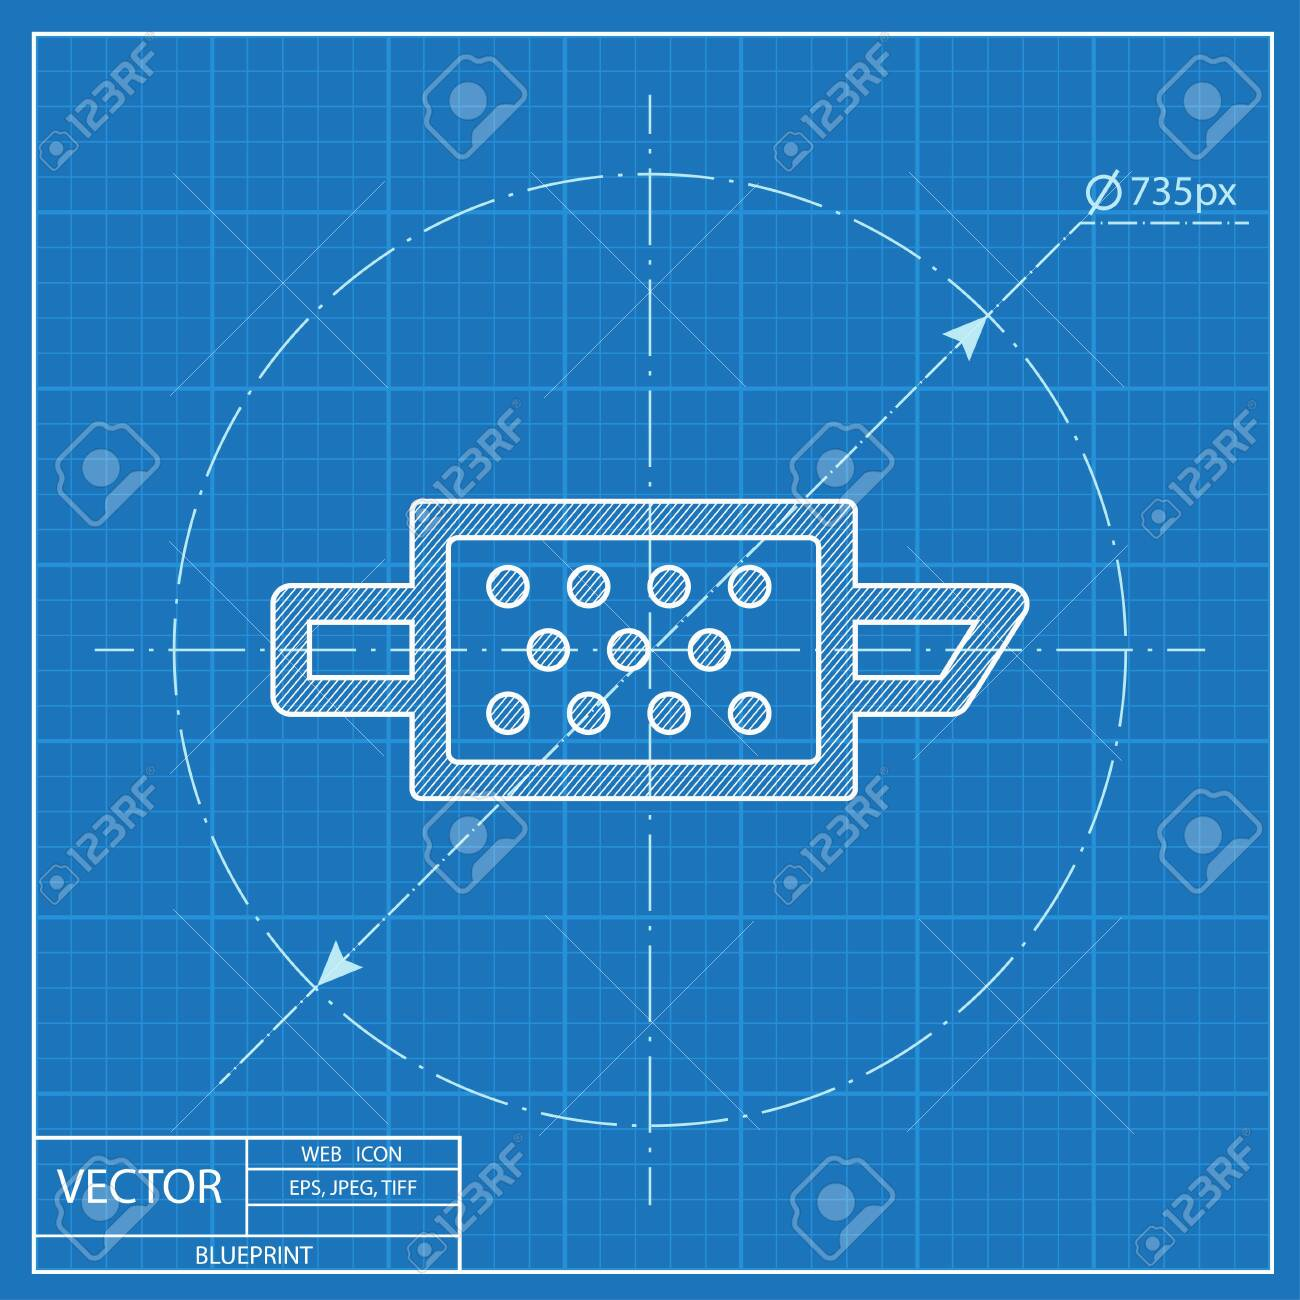 Particulate engine filter warning vector hmi dashboard blueprint icon - 122779438